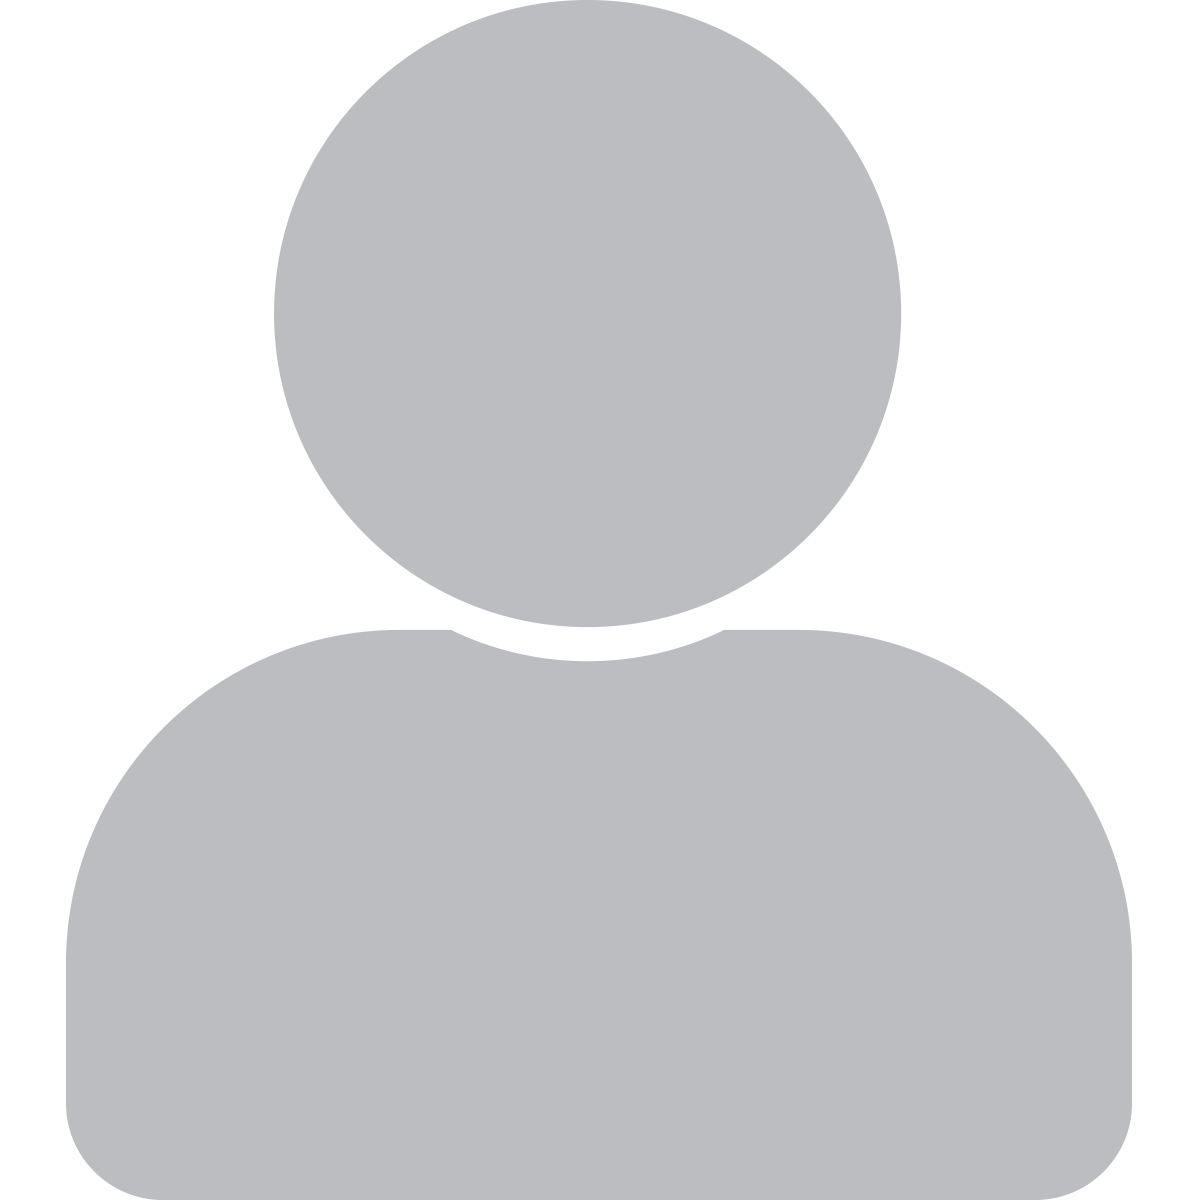 person icon grey